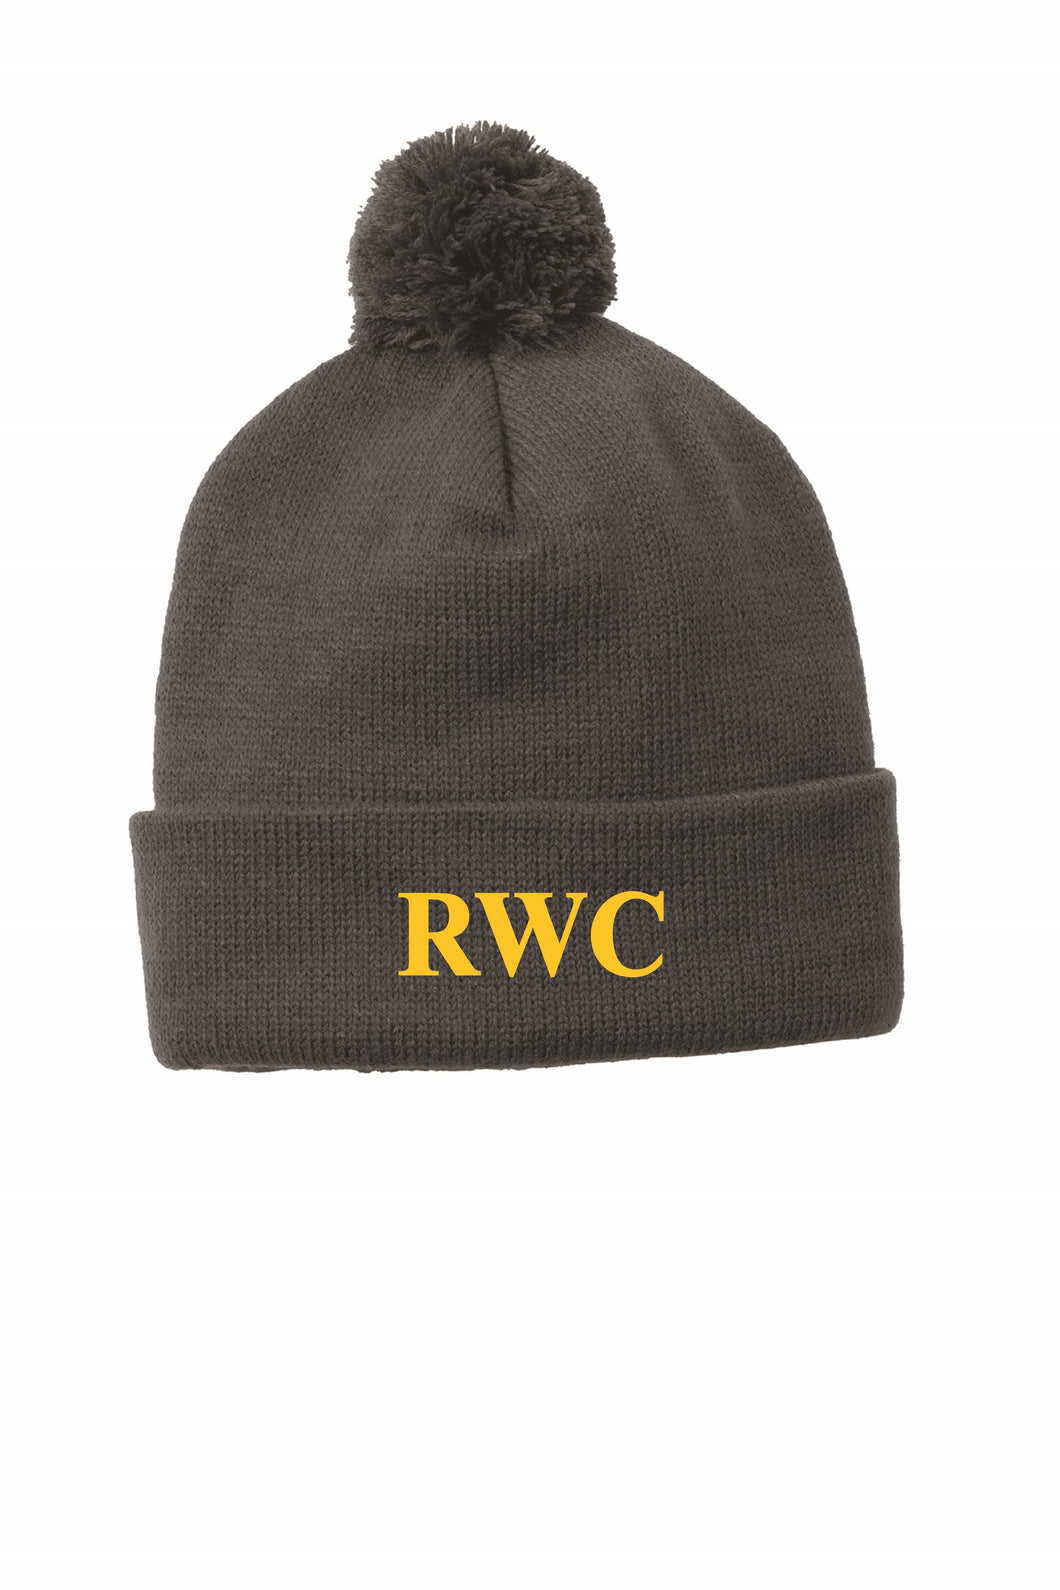 Riverdale Wrestling Club Stocking Hat Charcoal